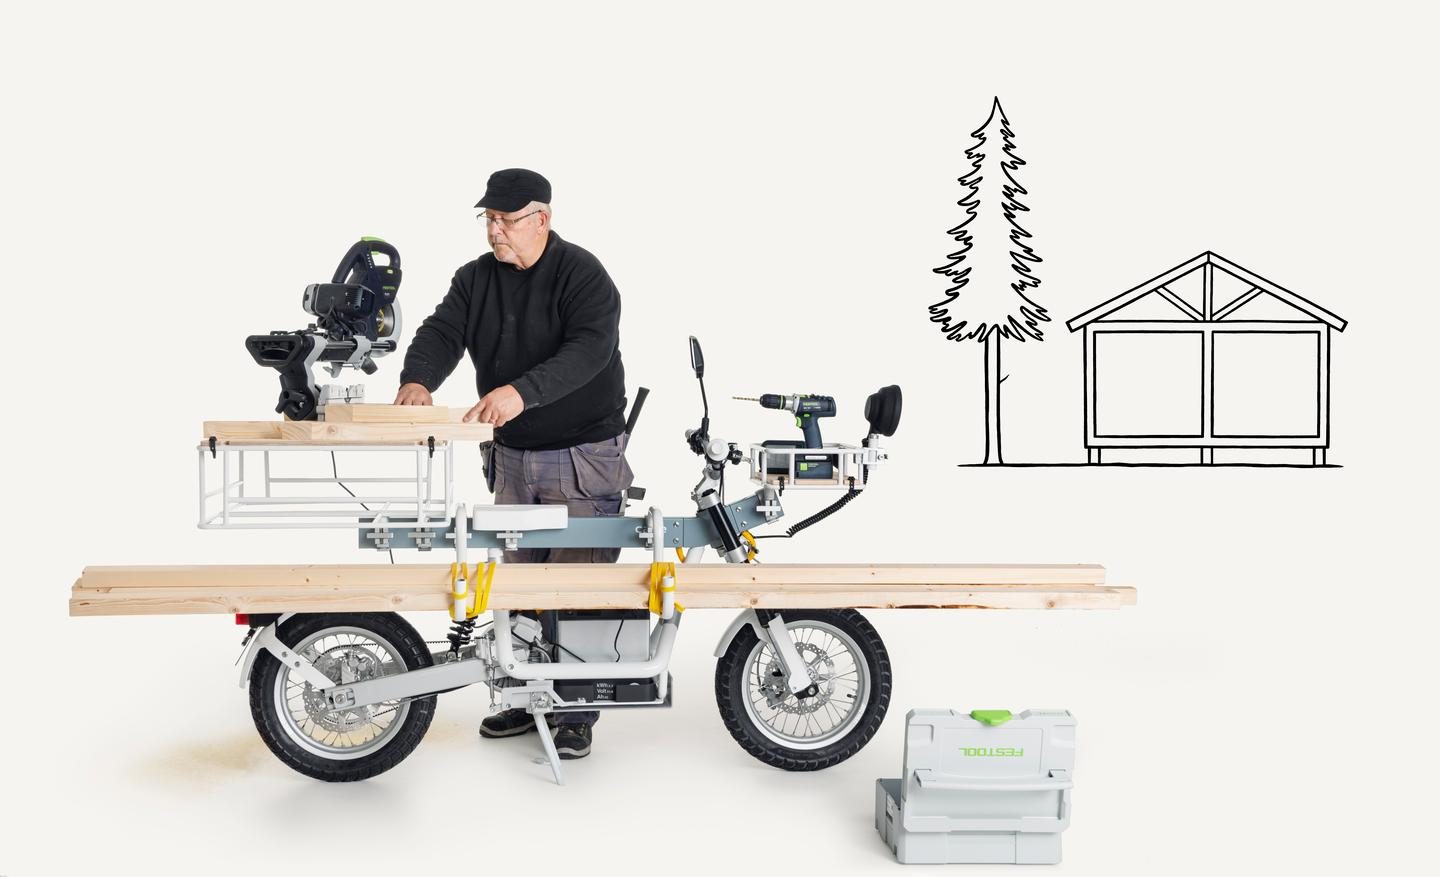 The Ösa utility e-bike has been designed as a workbench on wheels